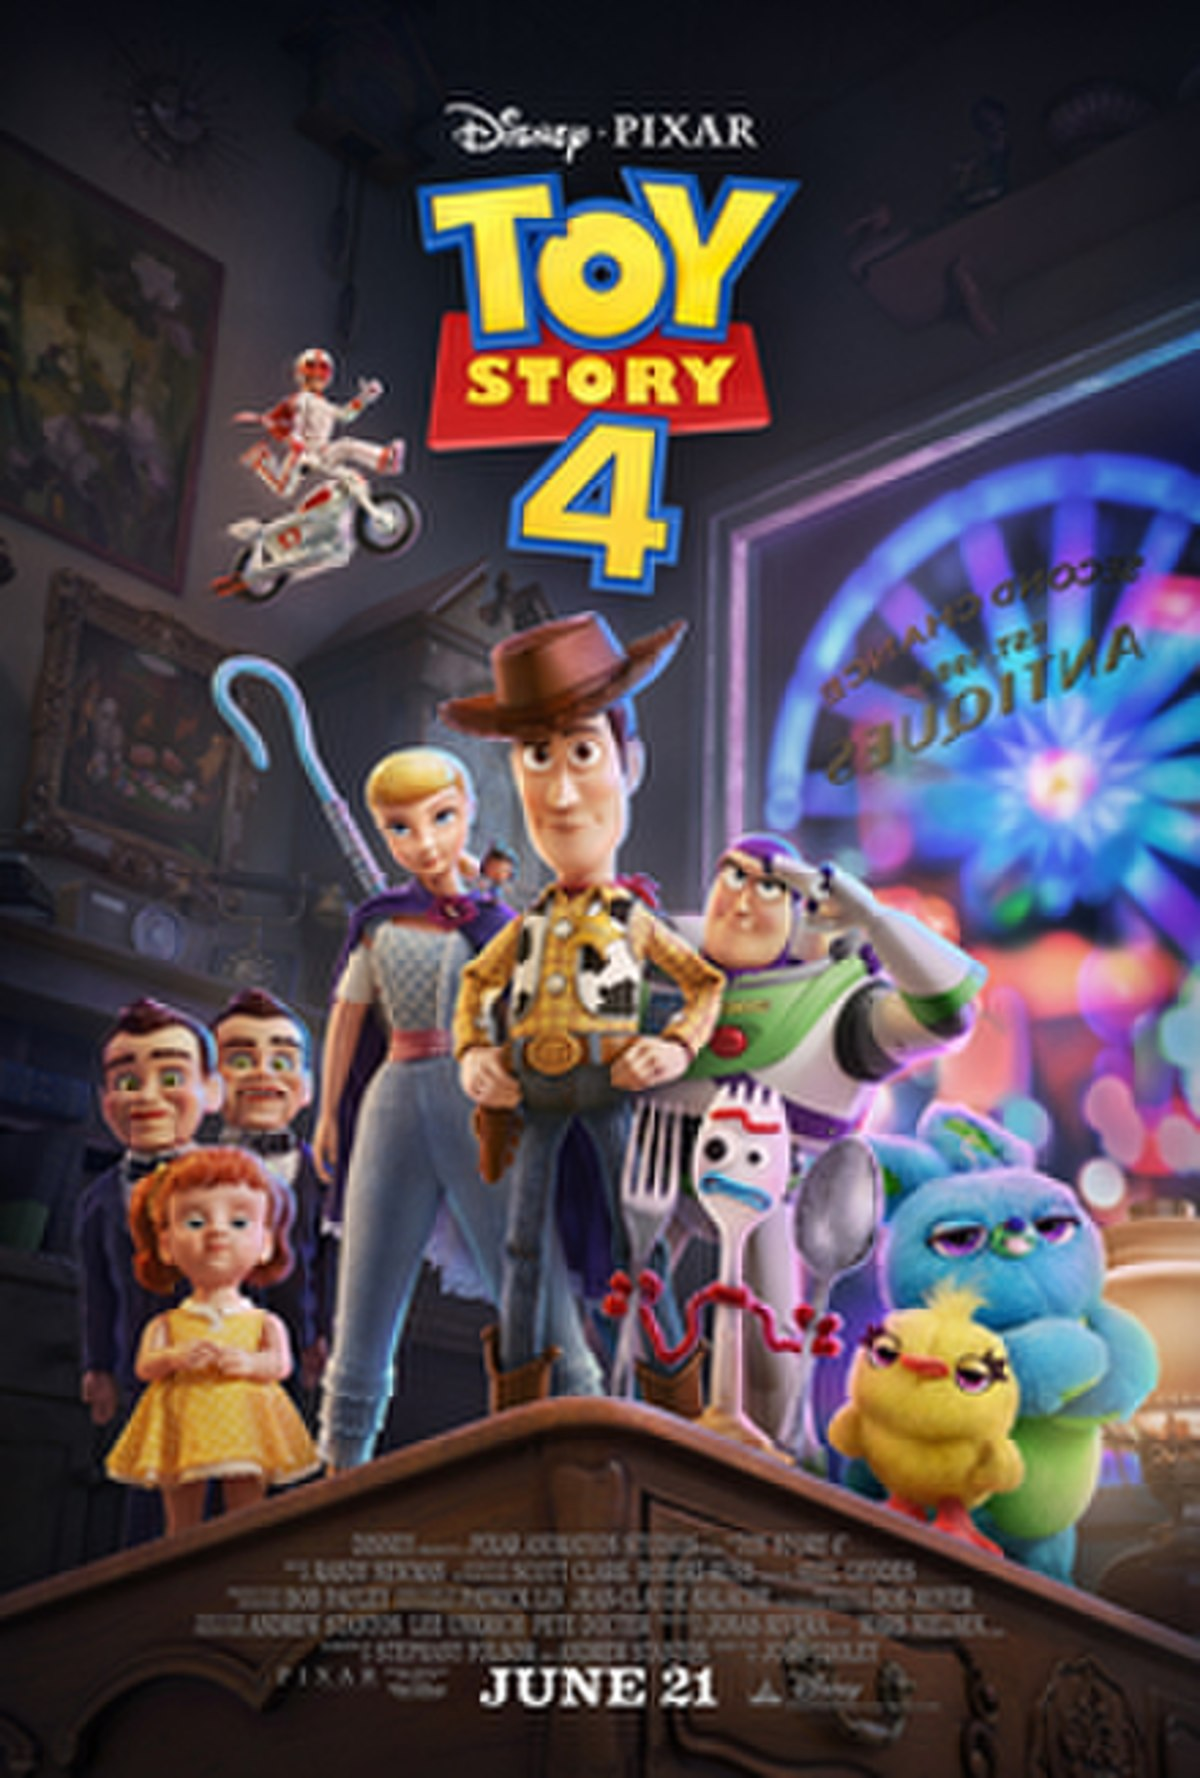 It's just a picture of Adorable Pictures of Toy Story Toys